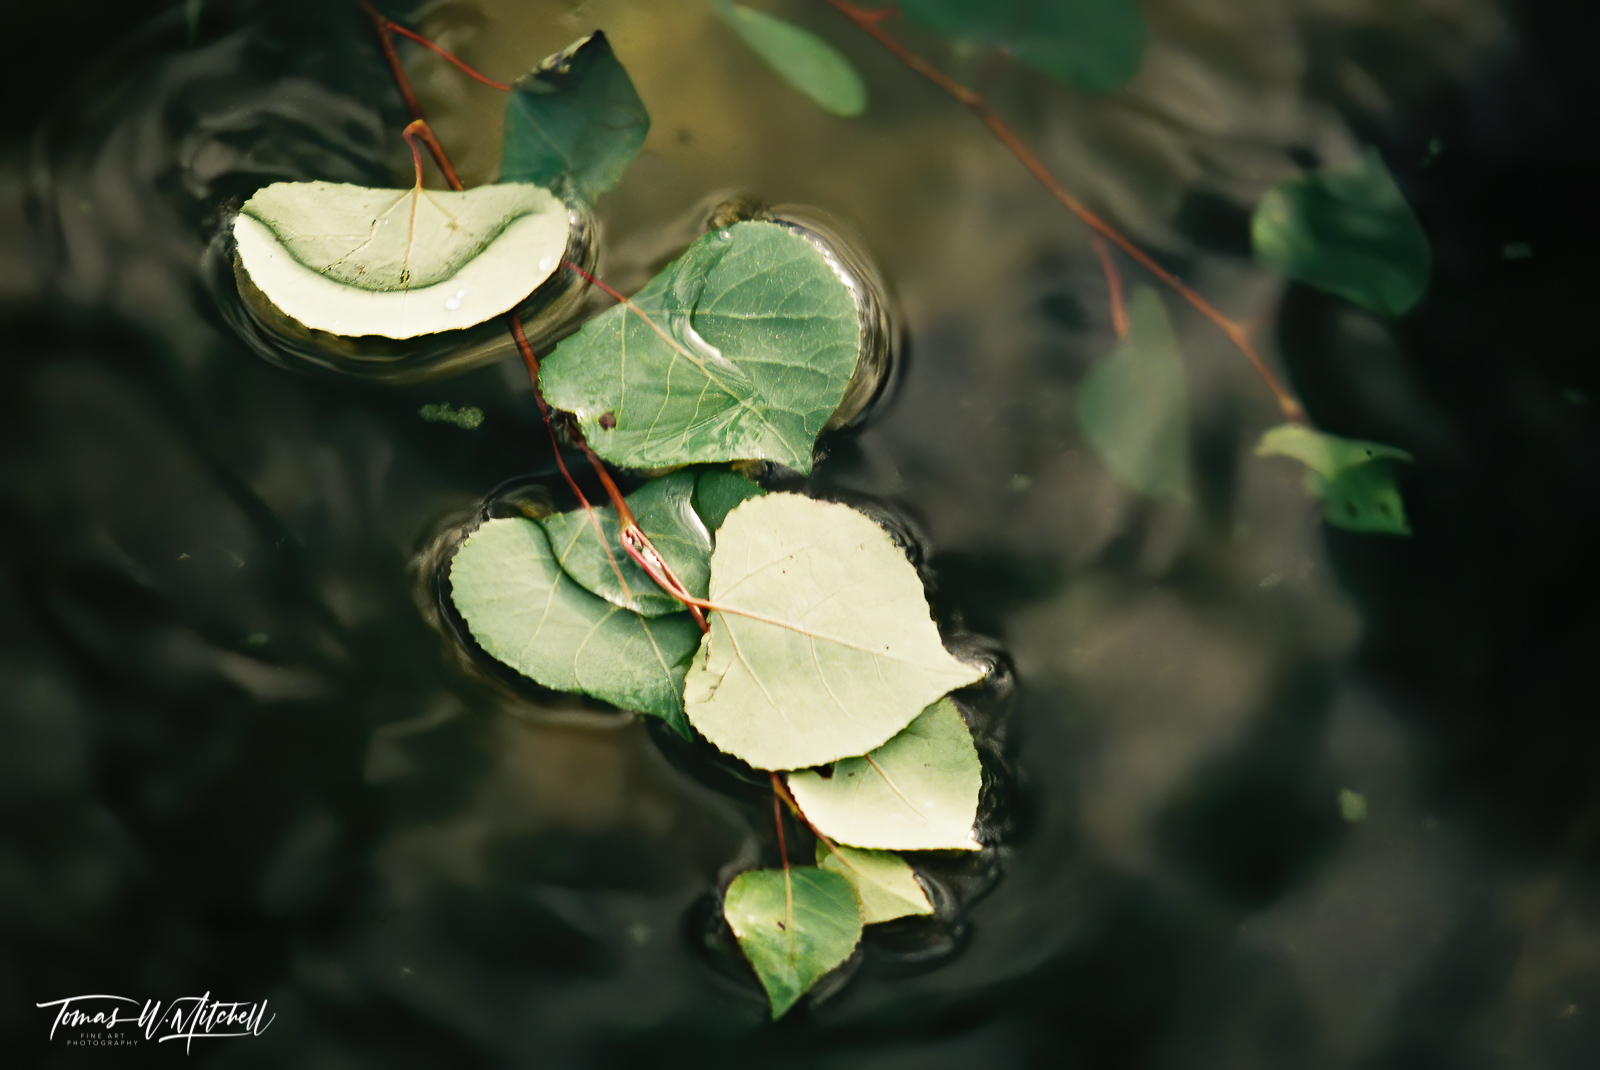 limited edition, fine art, prints, currant creek, utah, film, branches, water, photograph, leaves, abstract, photo